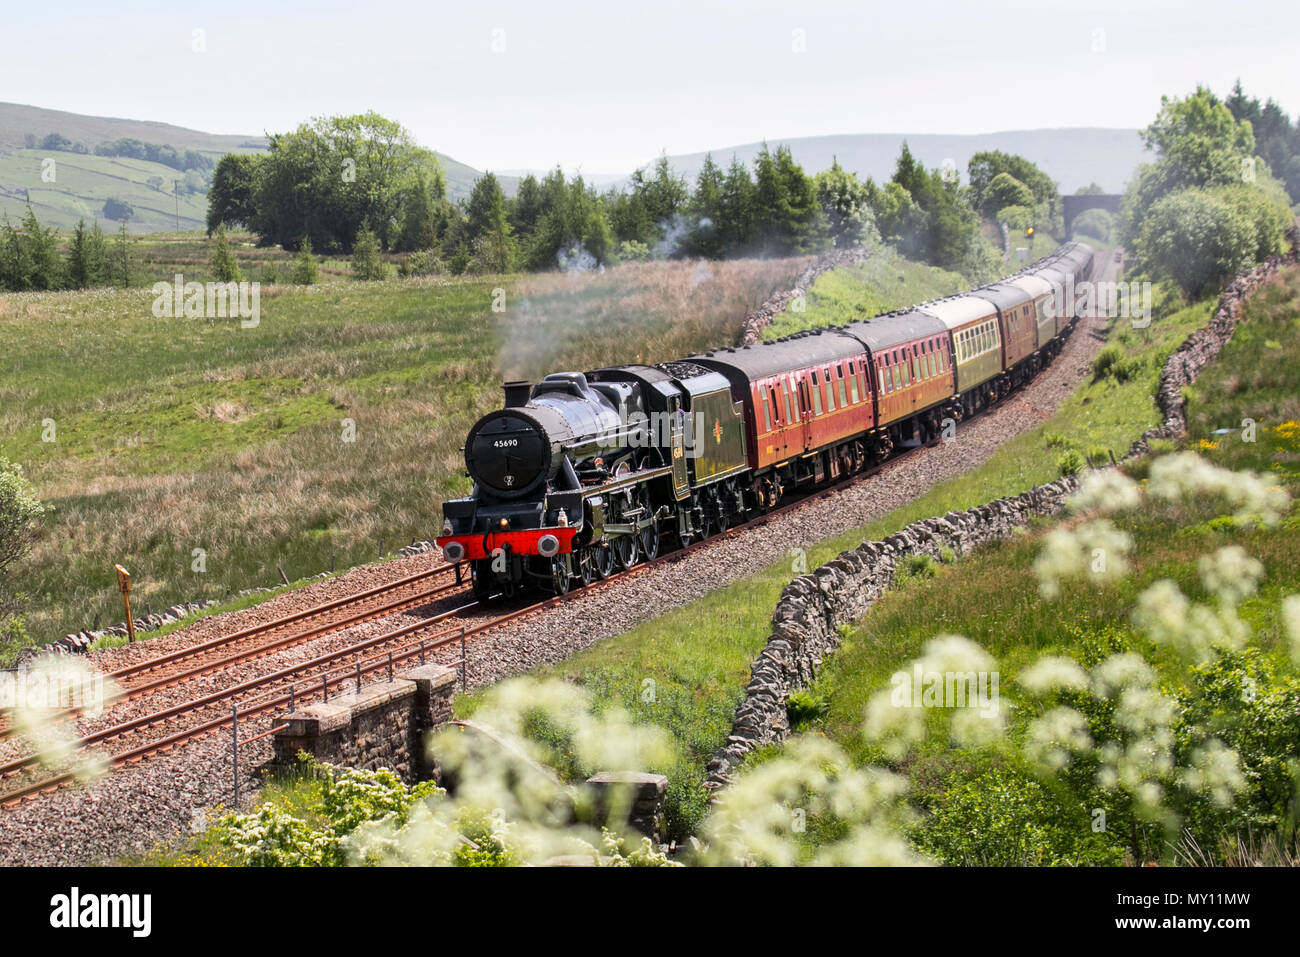 Garsdale, Cumbria. UK Weather. 05/06/2018. Passenger Steam train on te summit of Ais Gill.  London Midland and Scottish Railway (LMS) Jubilee Class No. 5690 (BR No. 45690) Leander is a preserved British steam locomotive on an excursion run over Shap Summit to Carlisle and back along the Settle & Carlisle line. Credit:MediaWorldImages/AlamyLiveNews. - Stock Image